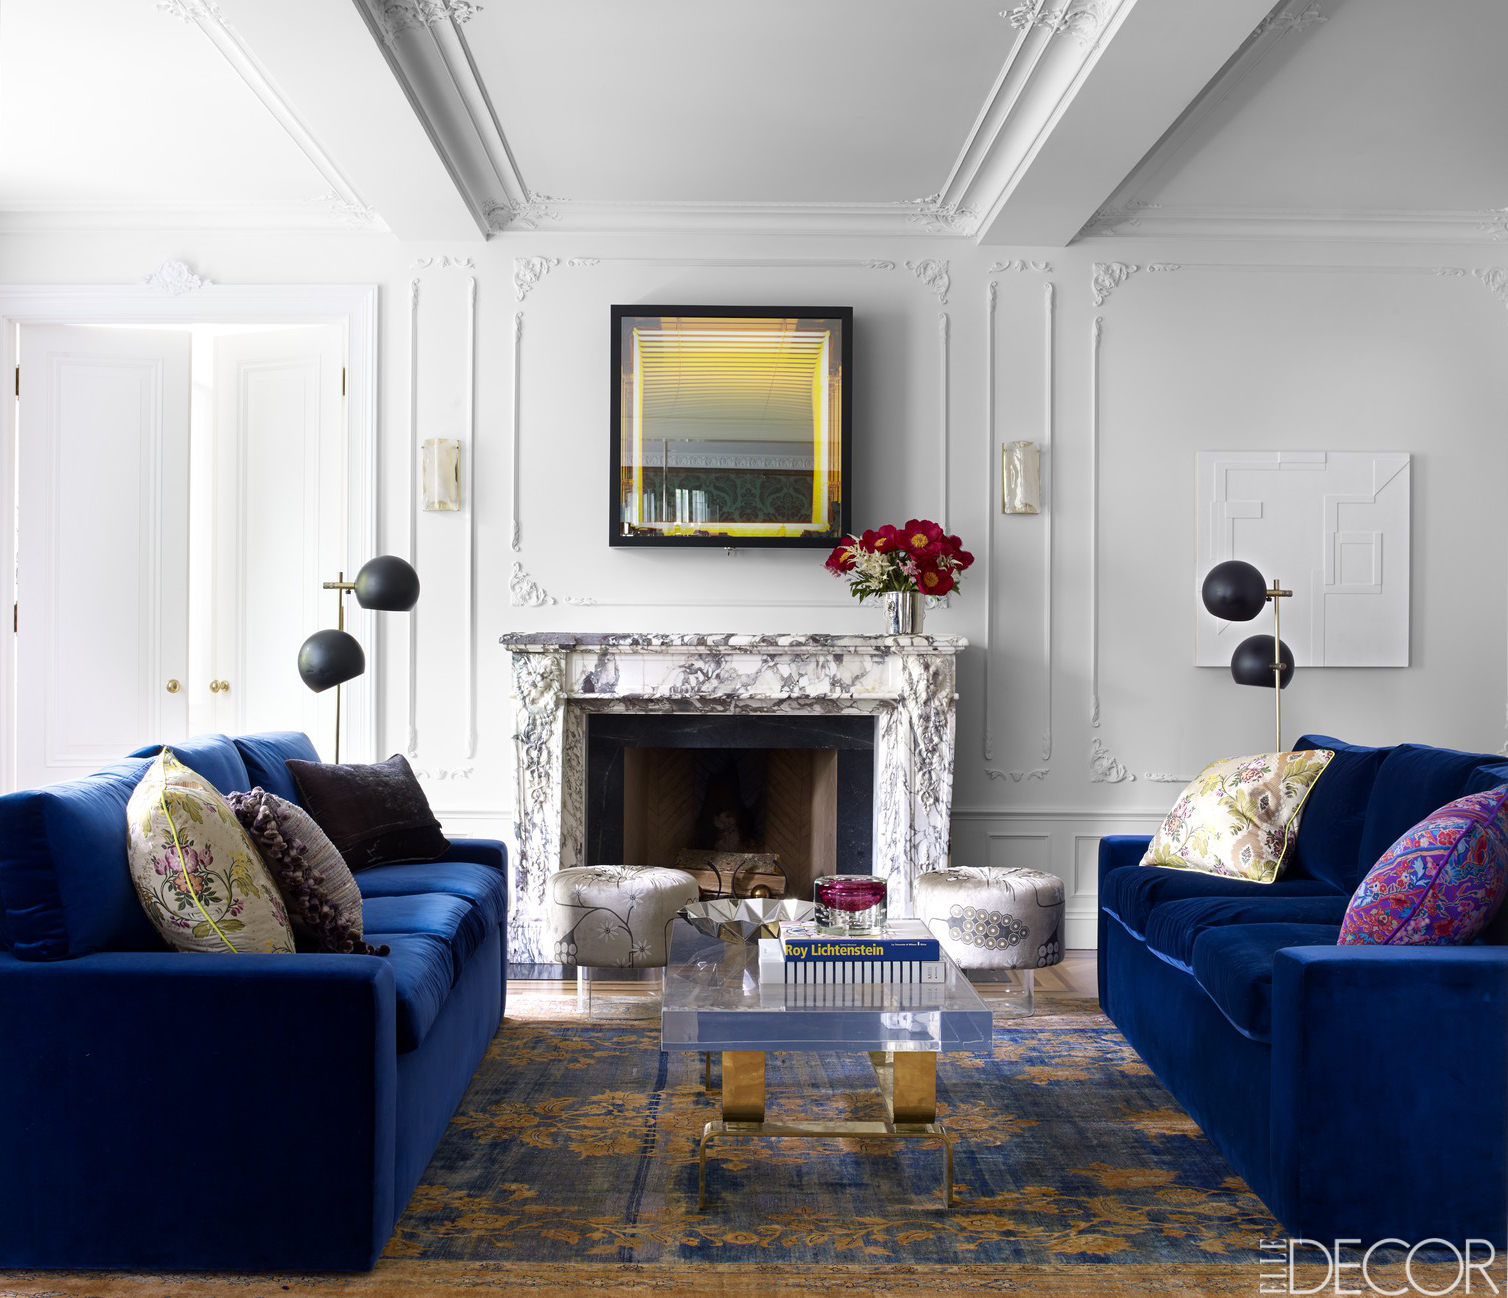 Elle Design: HOUSE TOUR: A New York Apartment With Dramatic Flair